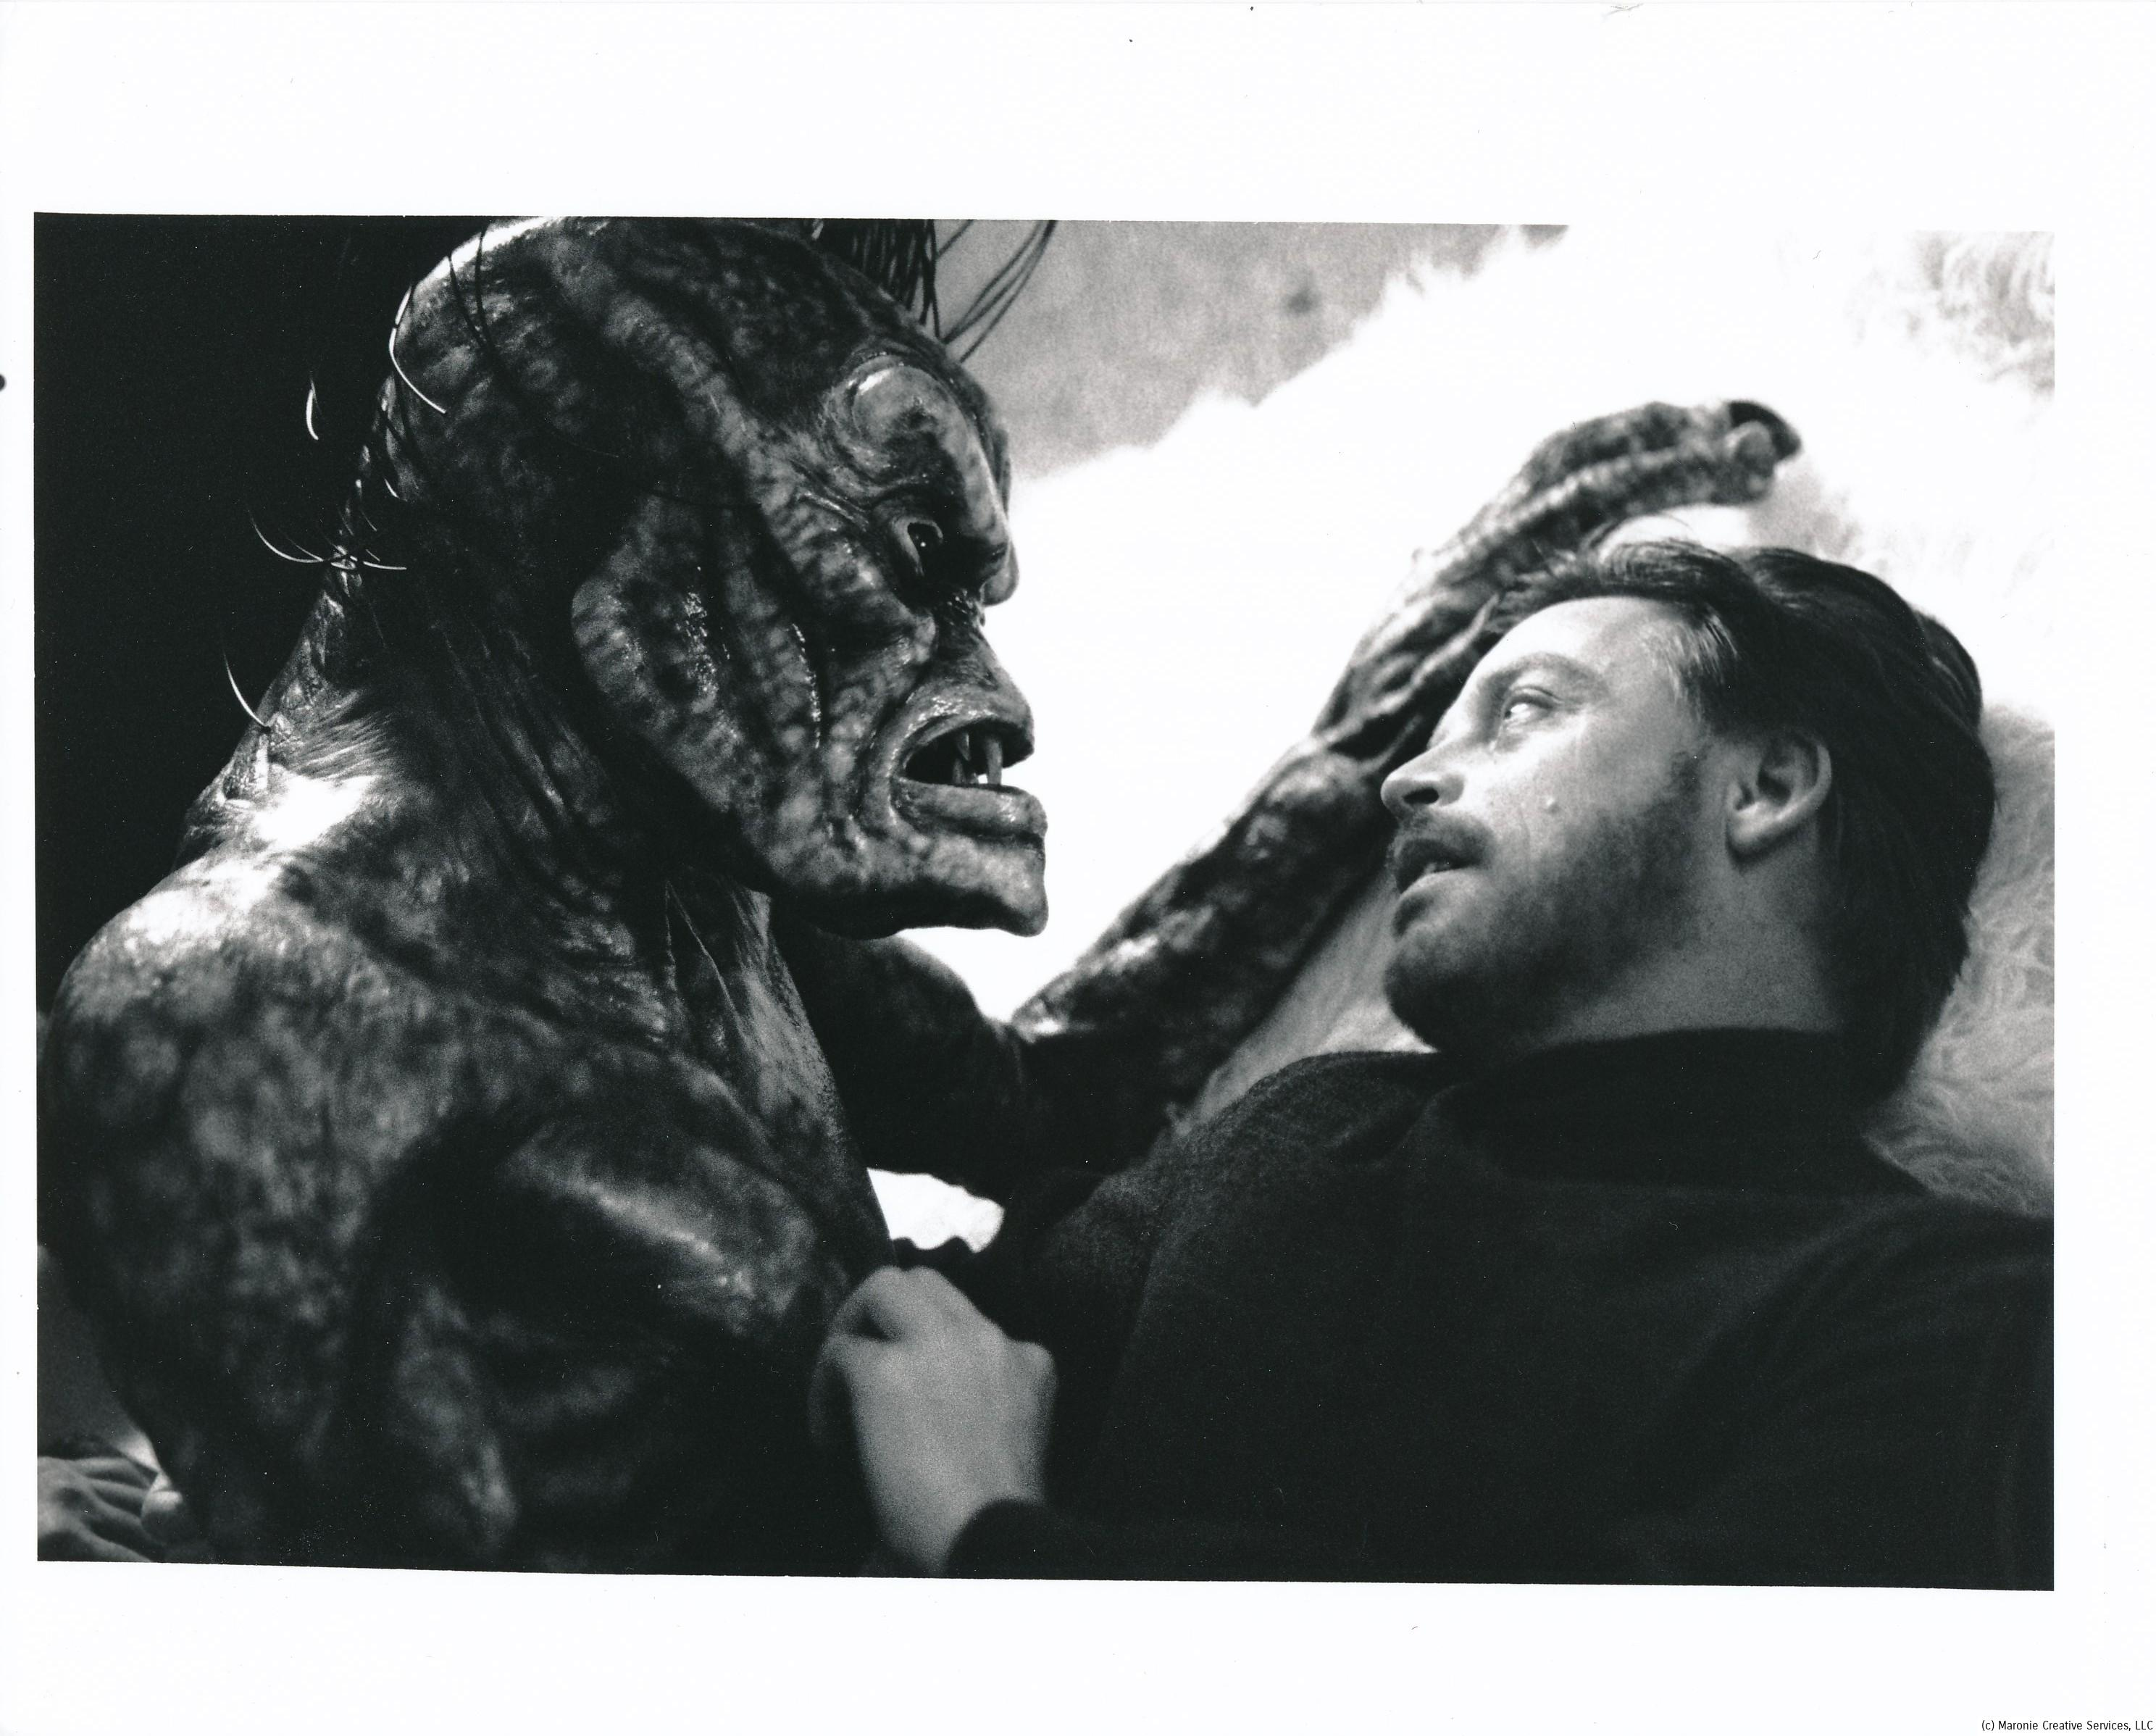 Mark Hamill stares down yet another hostile alien in a scene from the Dream Weaver episode of TVs seaQuest DSV. Where's Chewy when you need him? This series was produced by Steven Spielberg's company and ran on NBC for a couple of seasons. Viewers found it a crashing bore and the network kept it afloat solely on Spielberg's pedigree. Ah for the days of Admiral Nelson and Captain Crane! (c) Amblin/Universal Studios